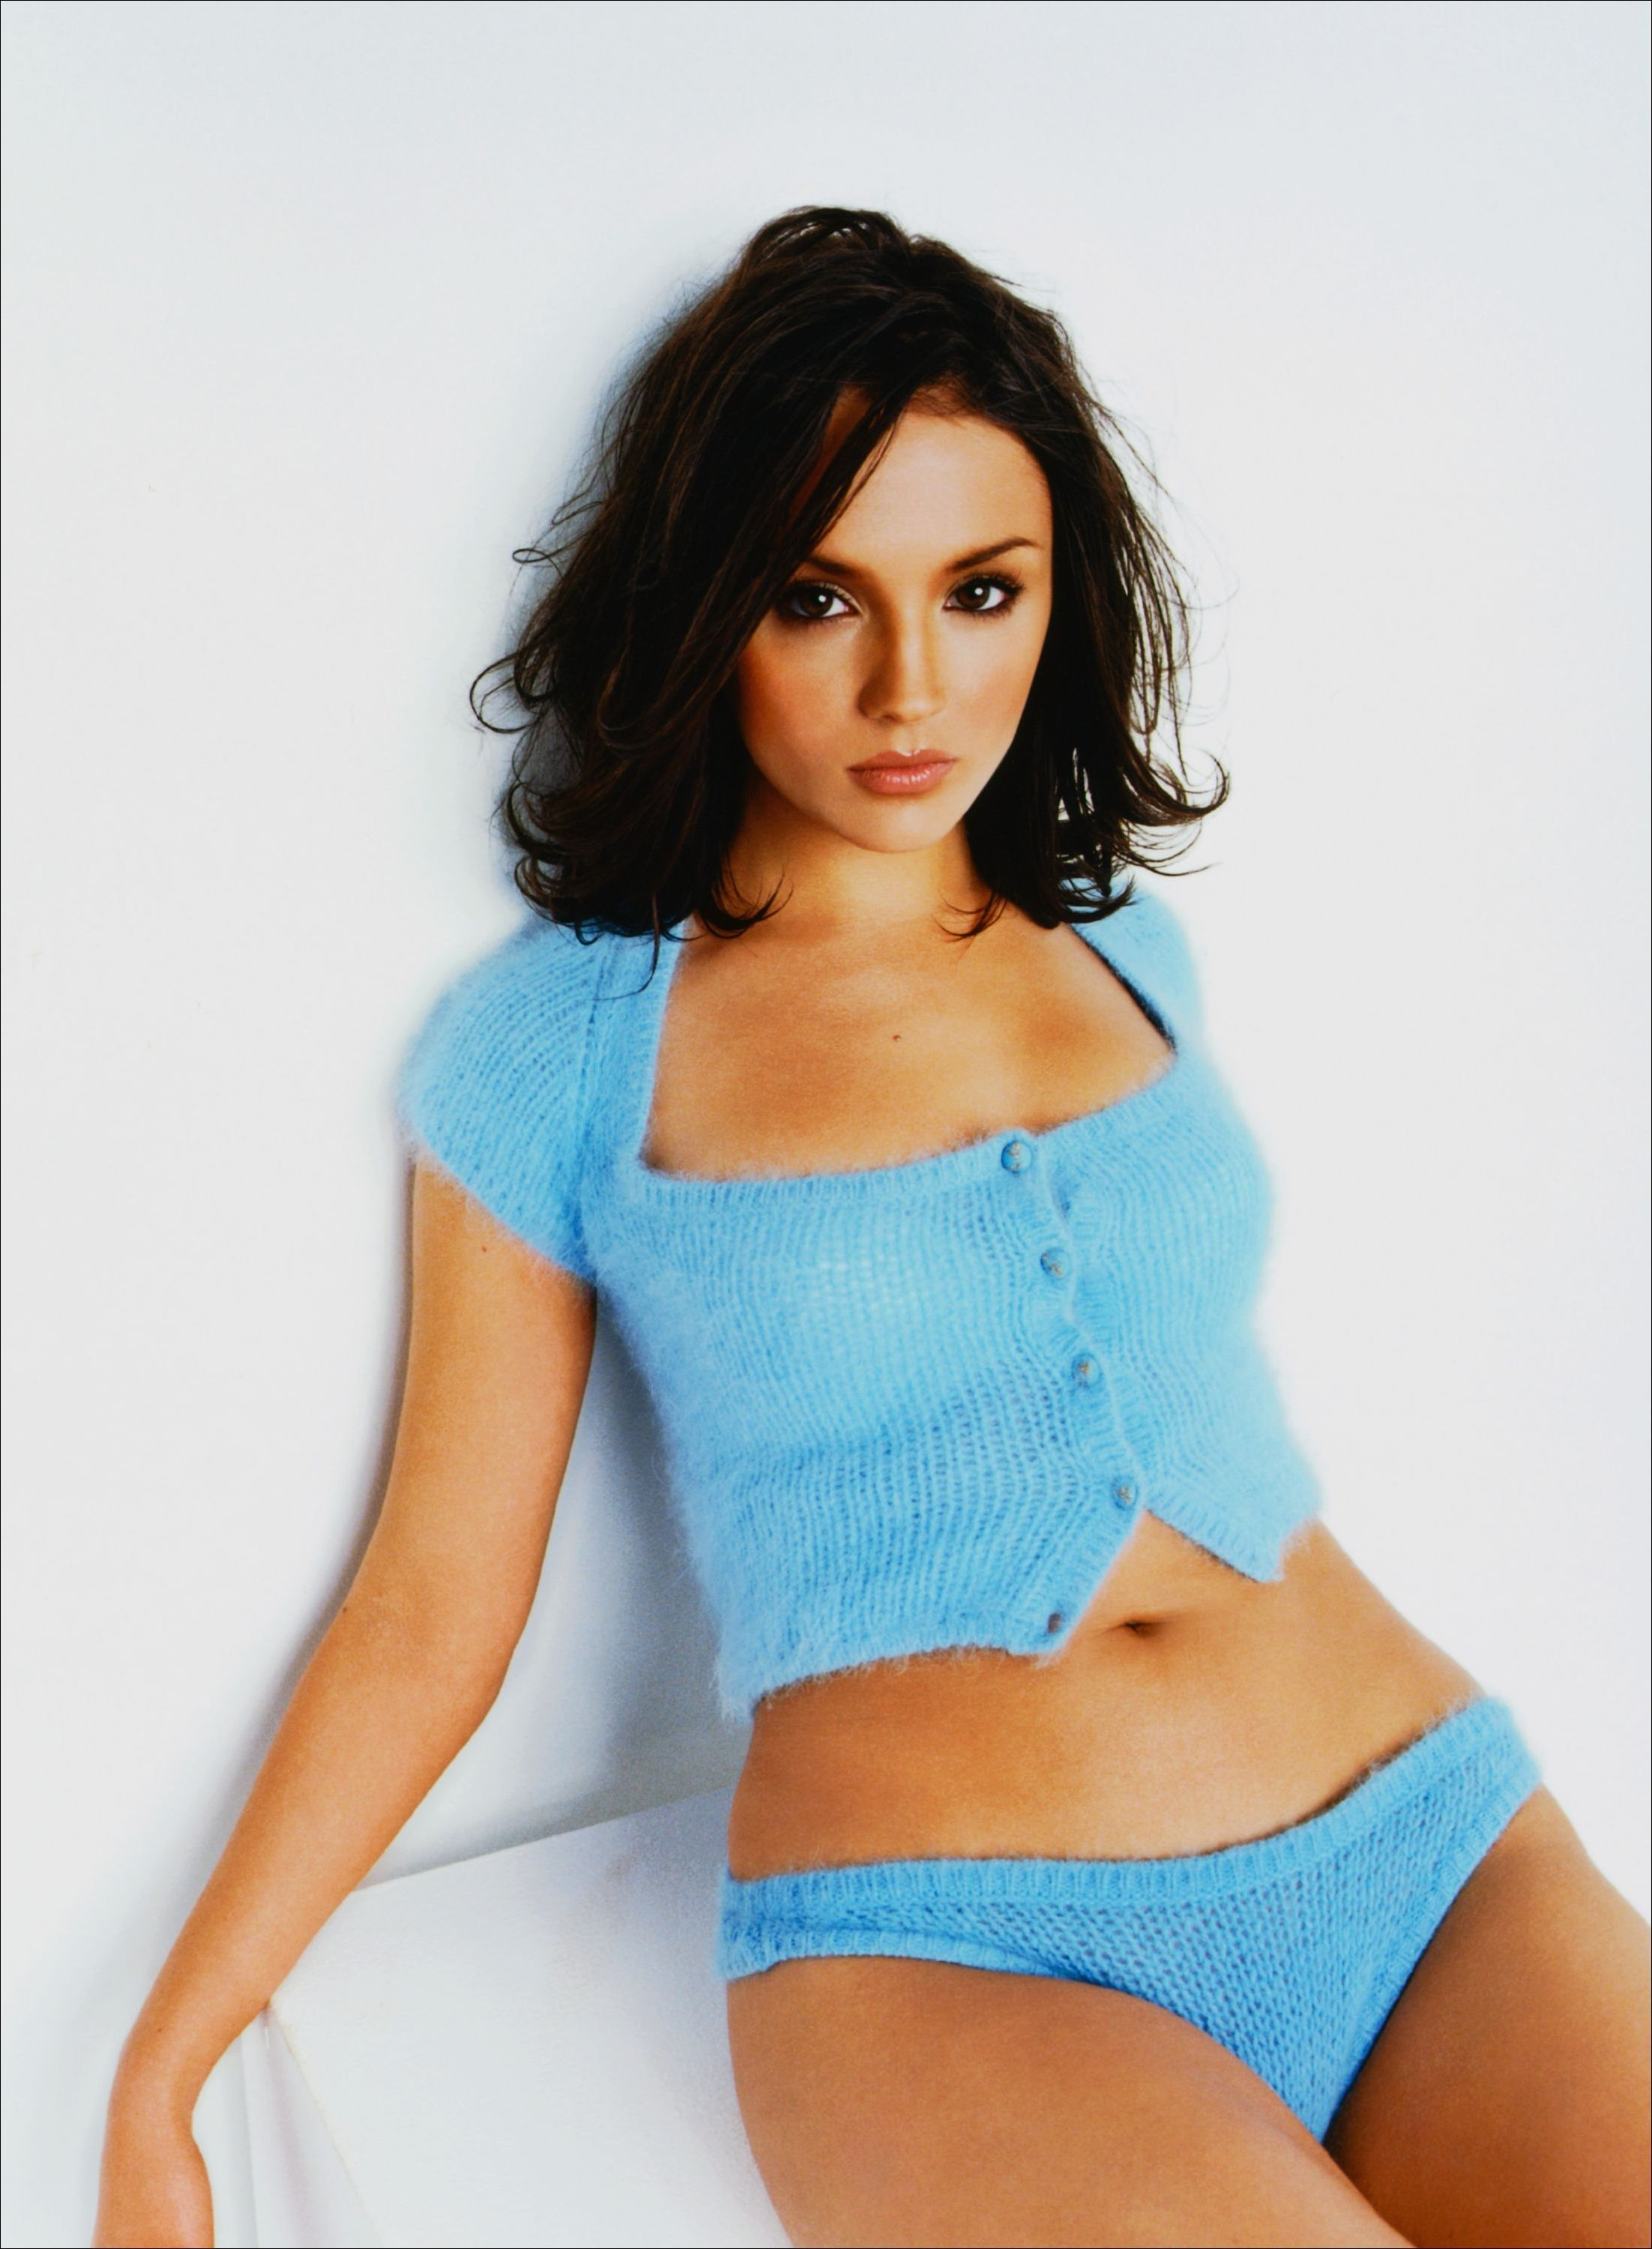 Butt Rachael Leigh Cook nudes (74 photo) Cleavage, Facebook, cleavage